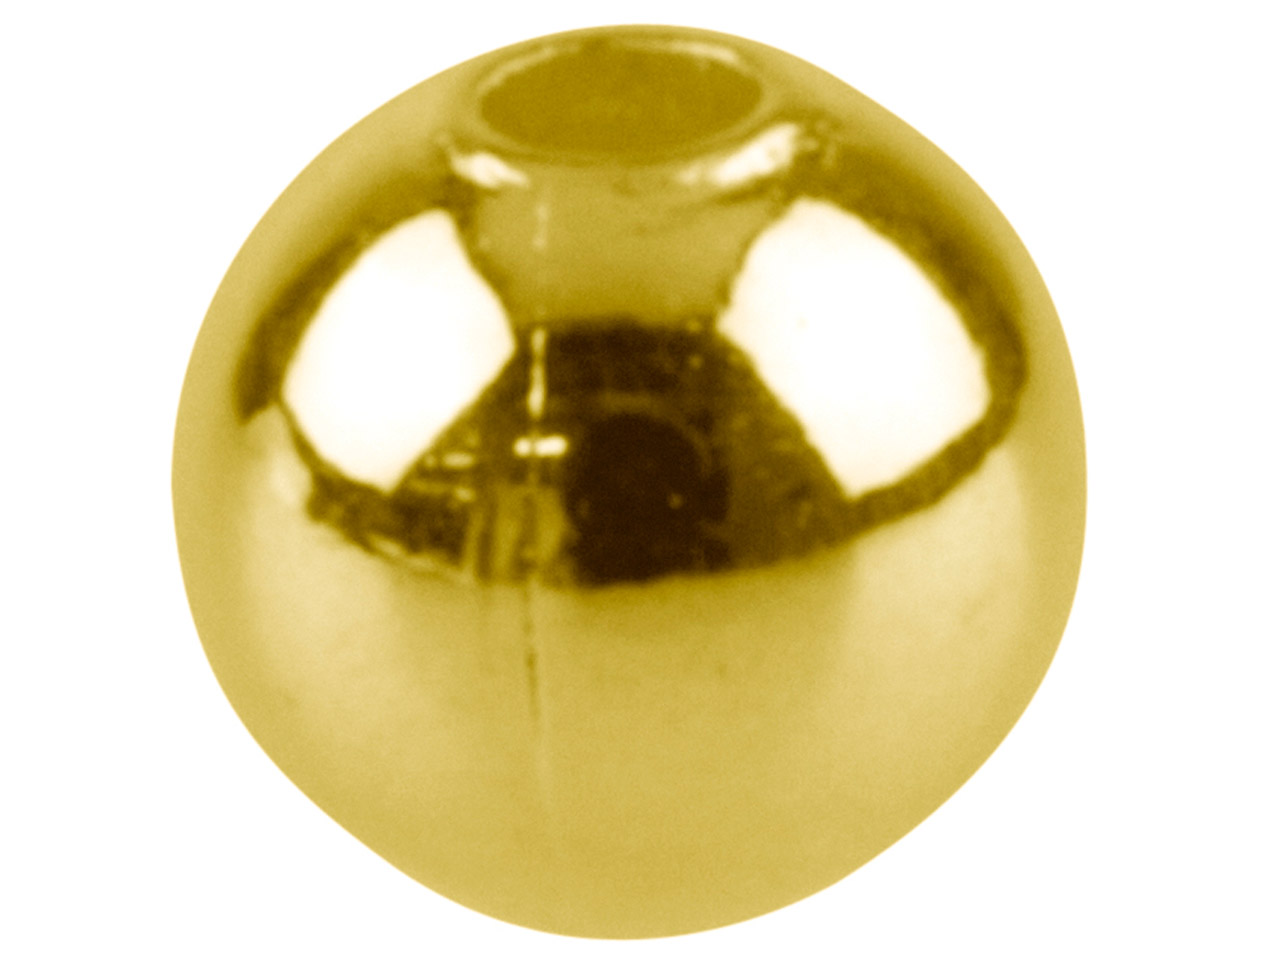 Gold Plated Plain Round Beads 3.0mm 2 Hole Pack of 50